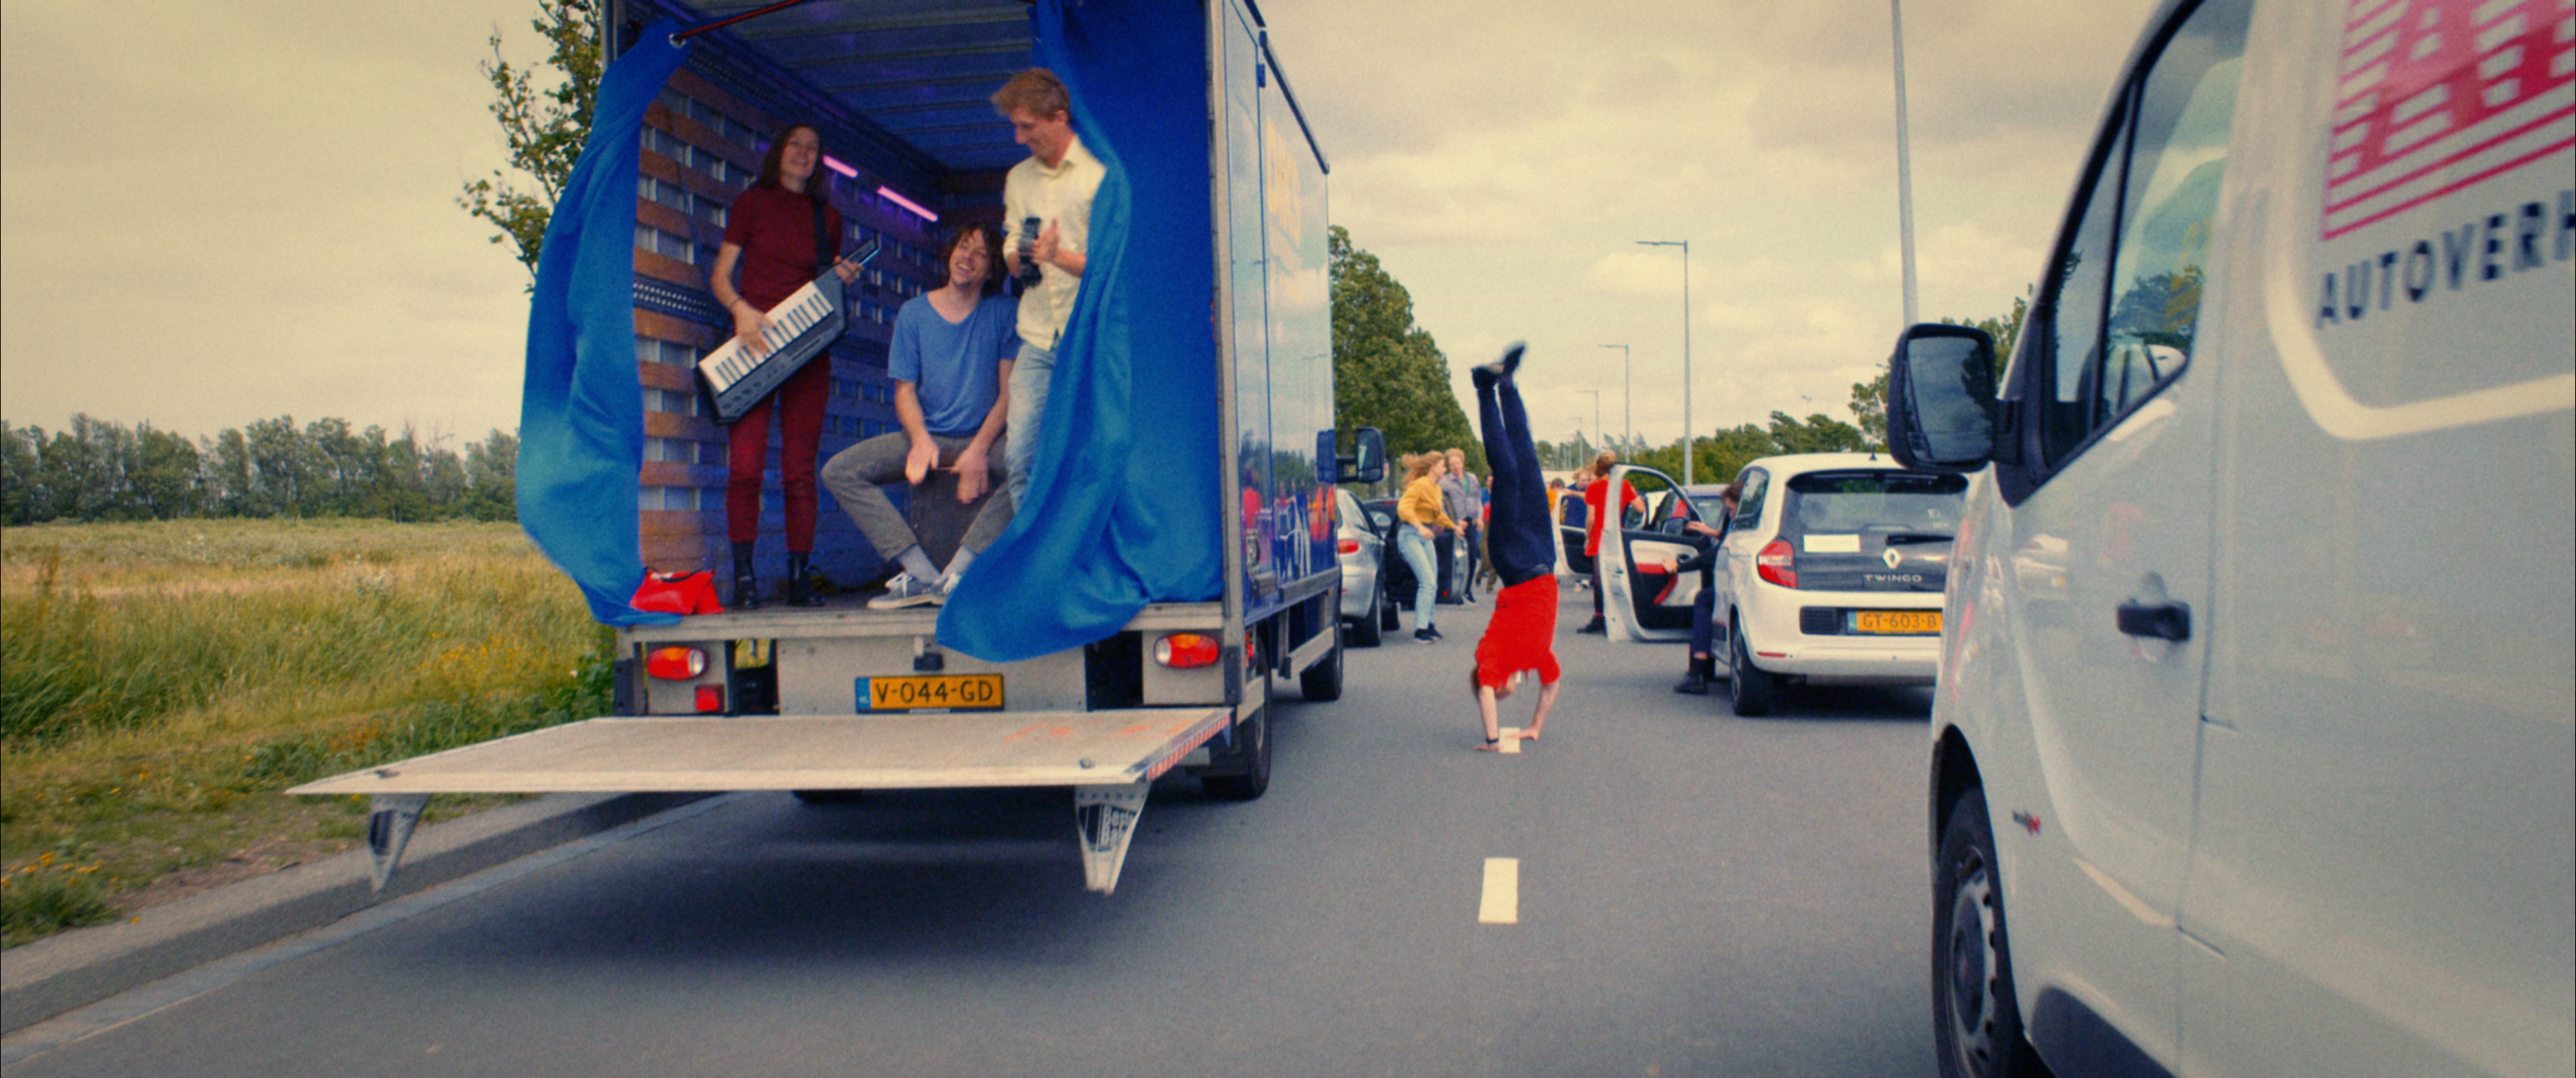 Still from the promo film Nieuwe Dag Op Set. It's a shot of two lanes of traffic. There is a band playing in the back of the truck and one guy is doing a cartwheel in between the lanes.